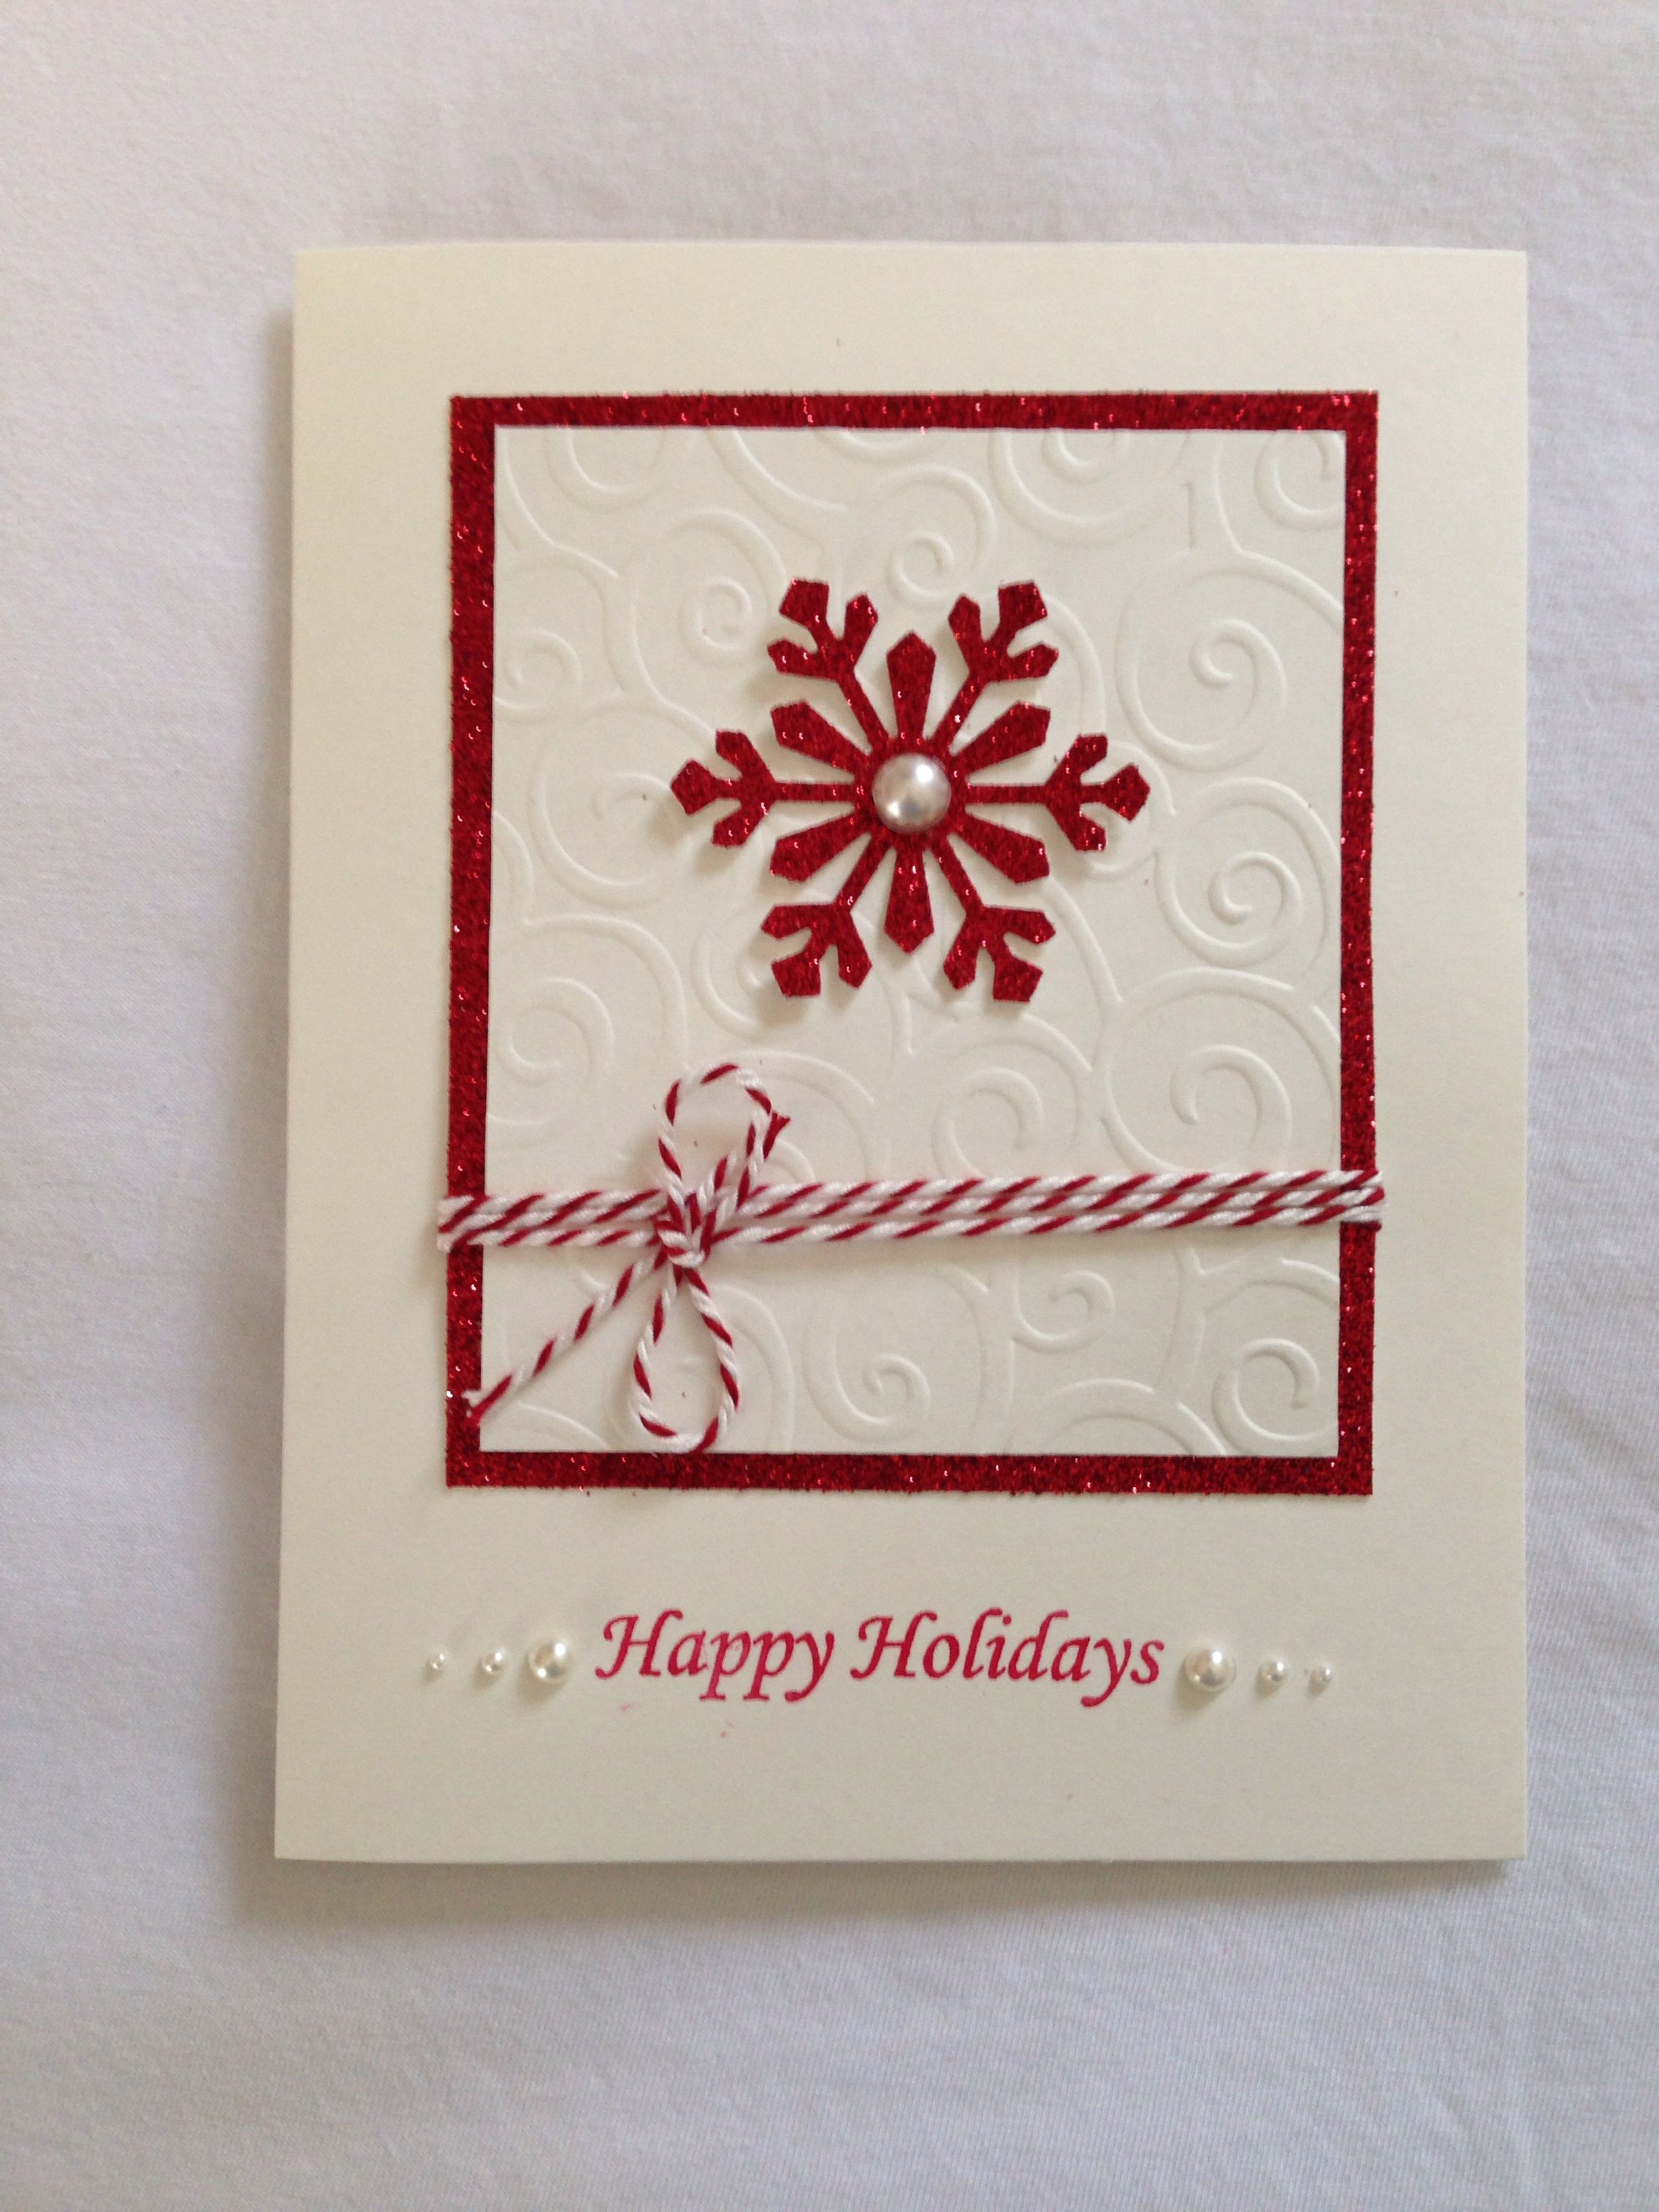 Christmas hand made card, snowflake, red, glitters, Merry